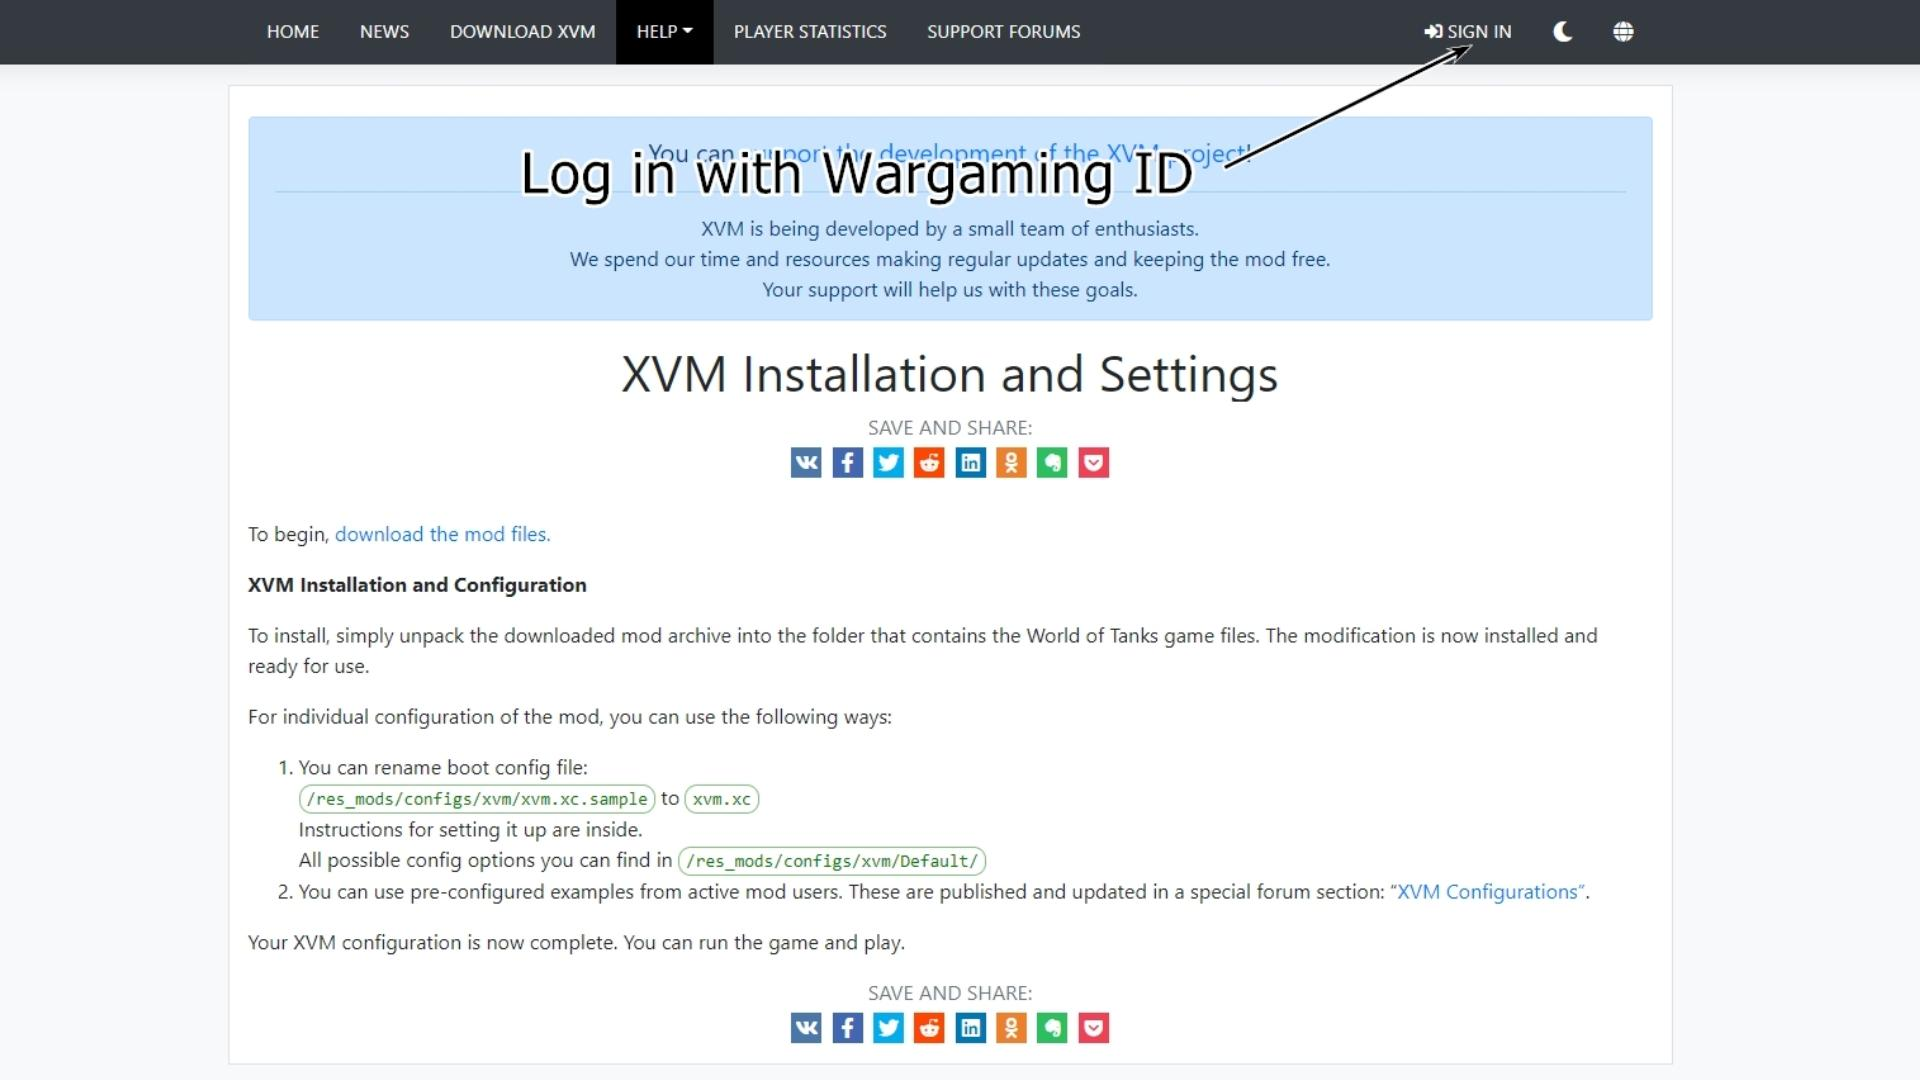 Sign in with WargamingID in XVM official site